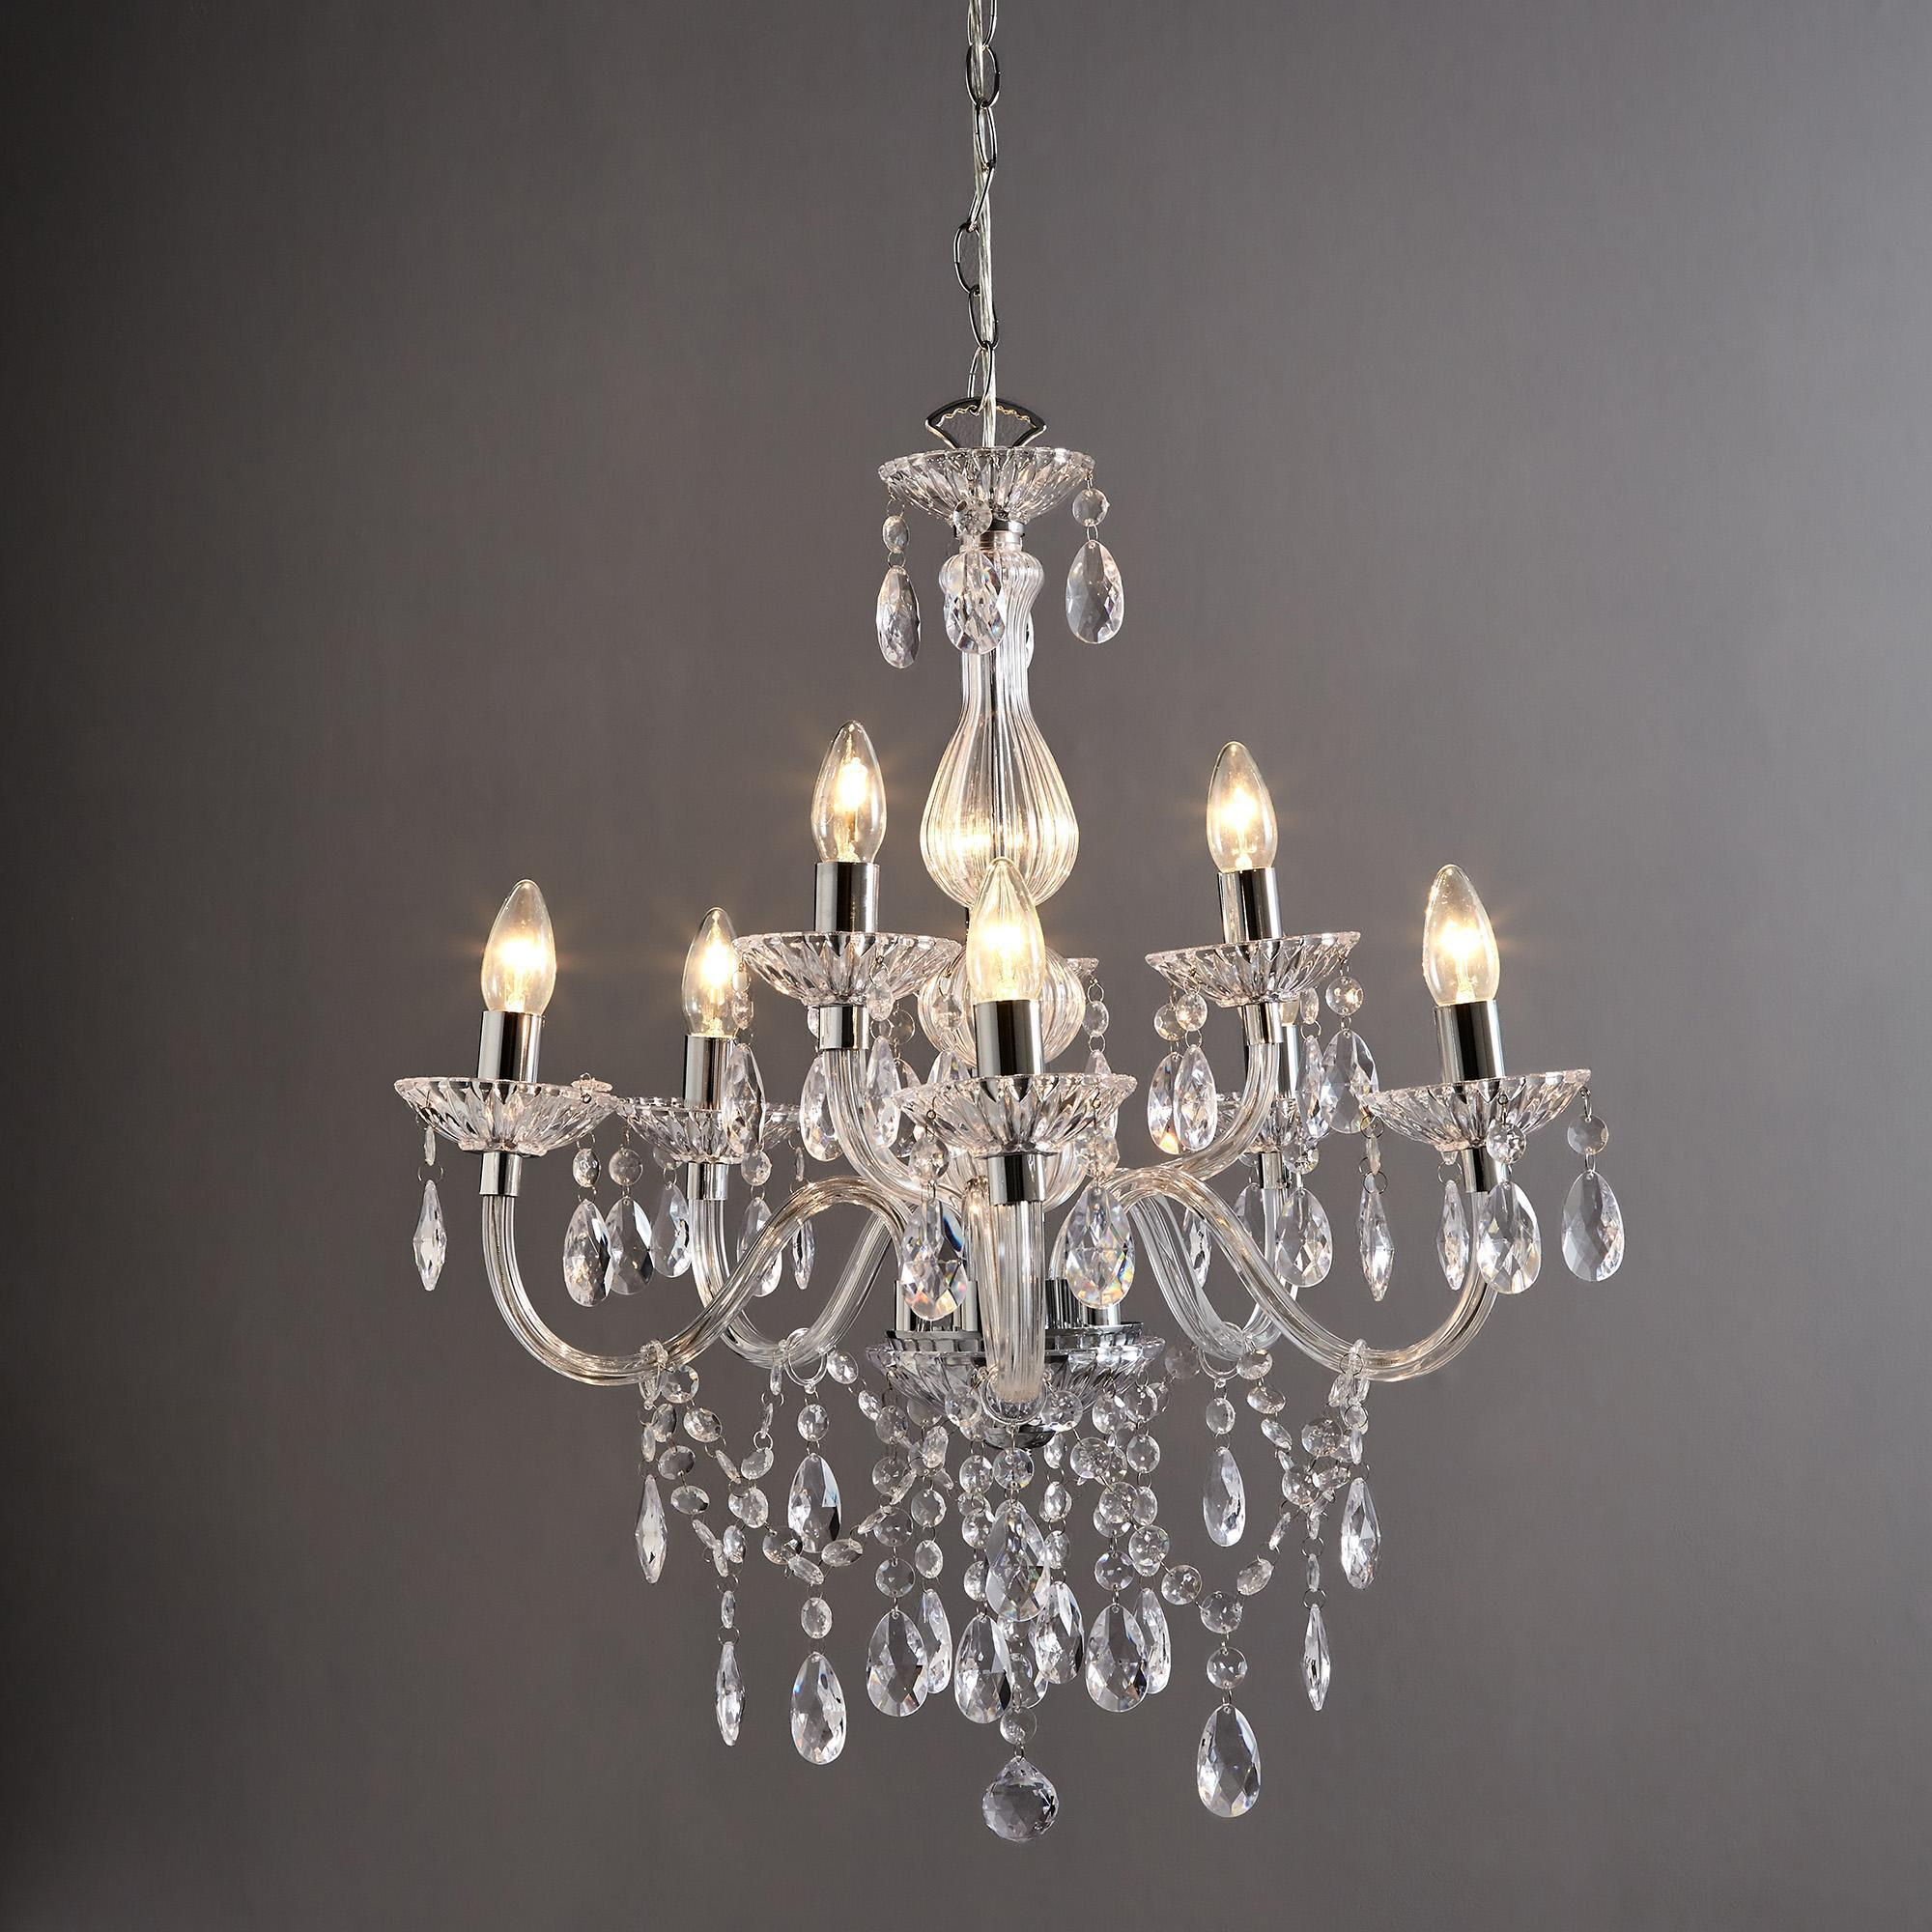 Add Statement Chandeliers To Your North East Home To Bring